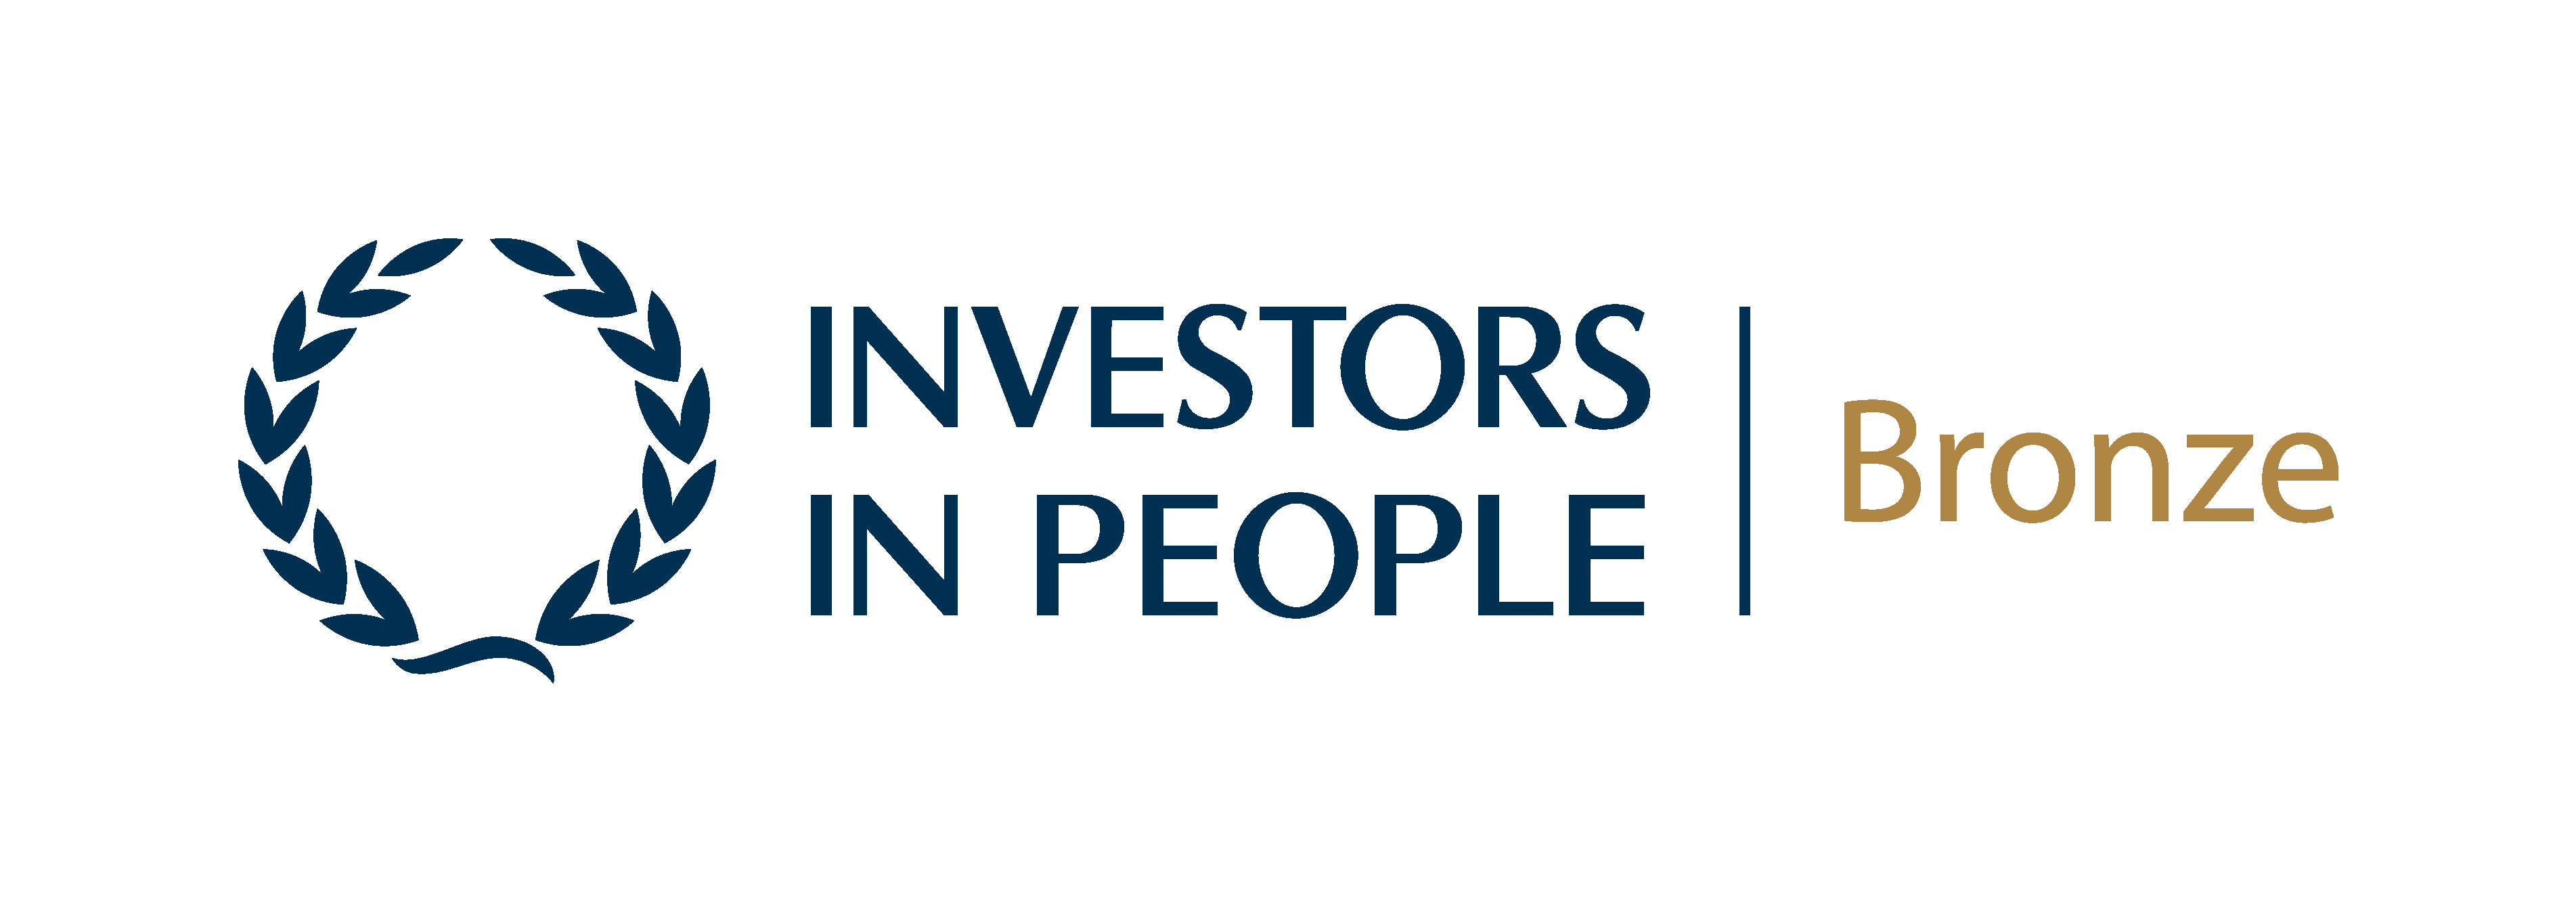 Maher recognised as an Investor in People